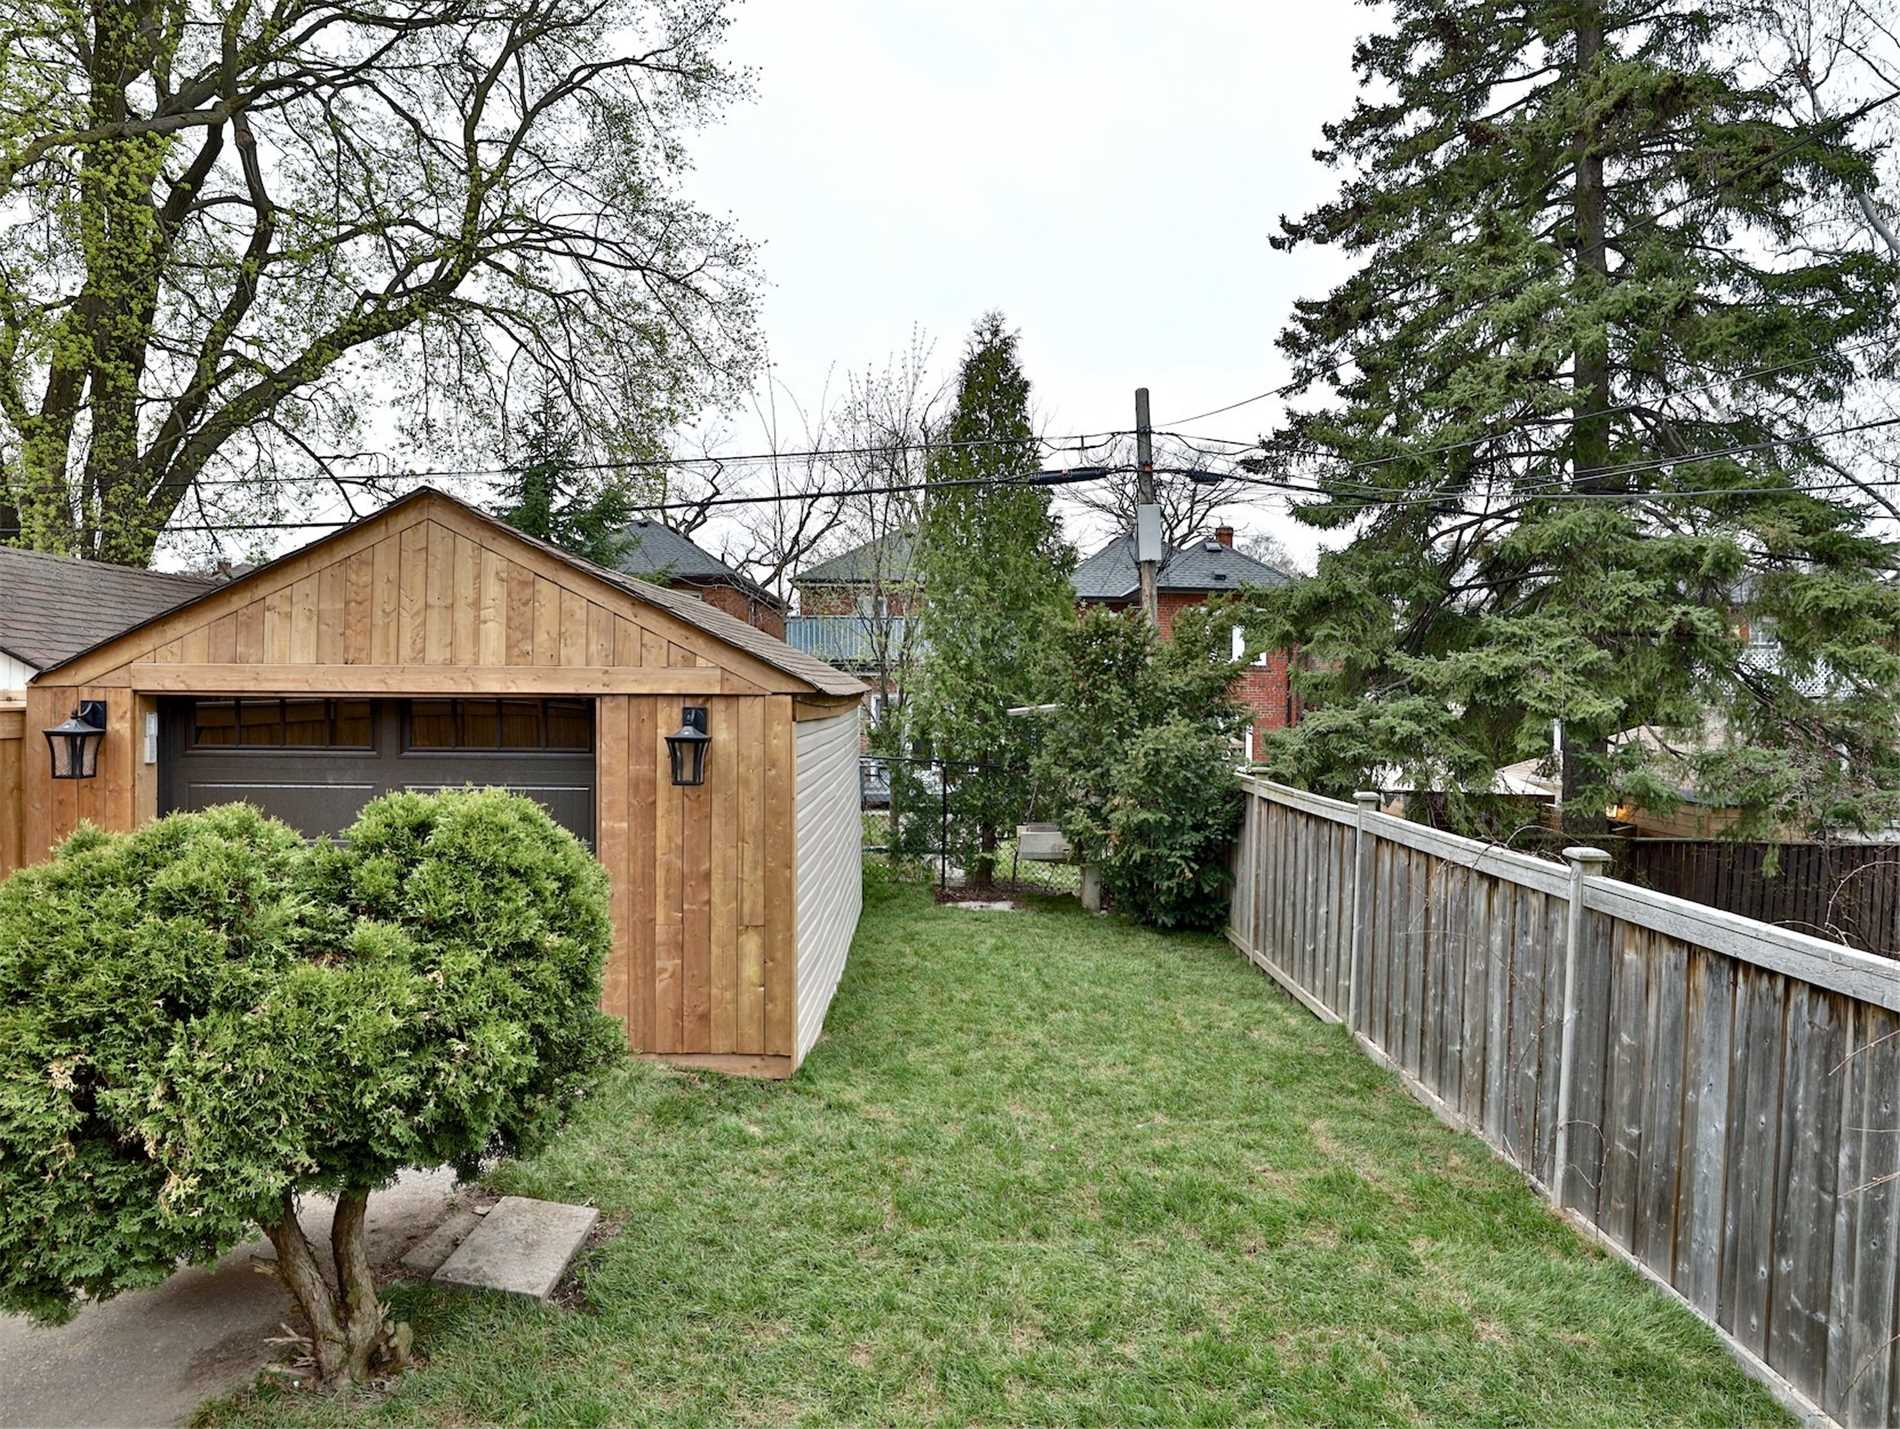 52 Shields Ave, Toronto, Ontario M5N2K4, 4 Bedrooms Bedrooms, ,5 BathroomsBathrooms,Detached,Shields,C4600924